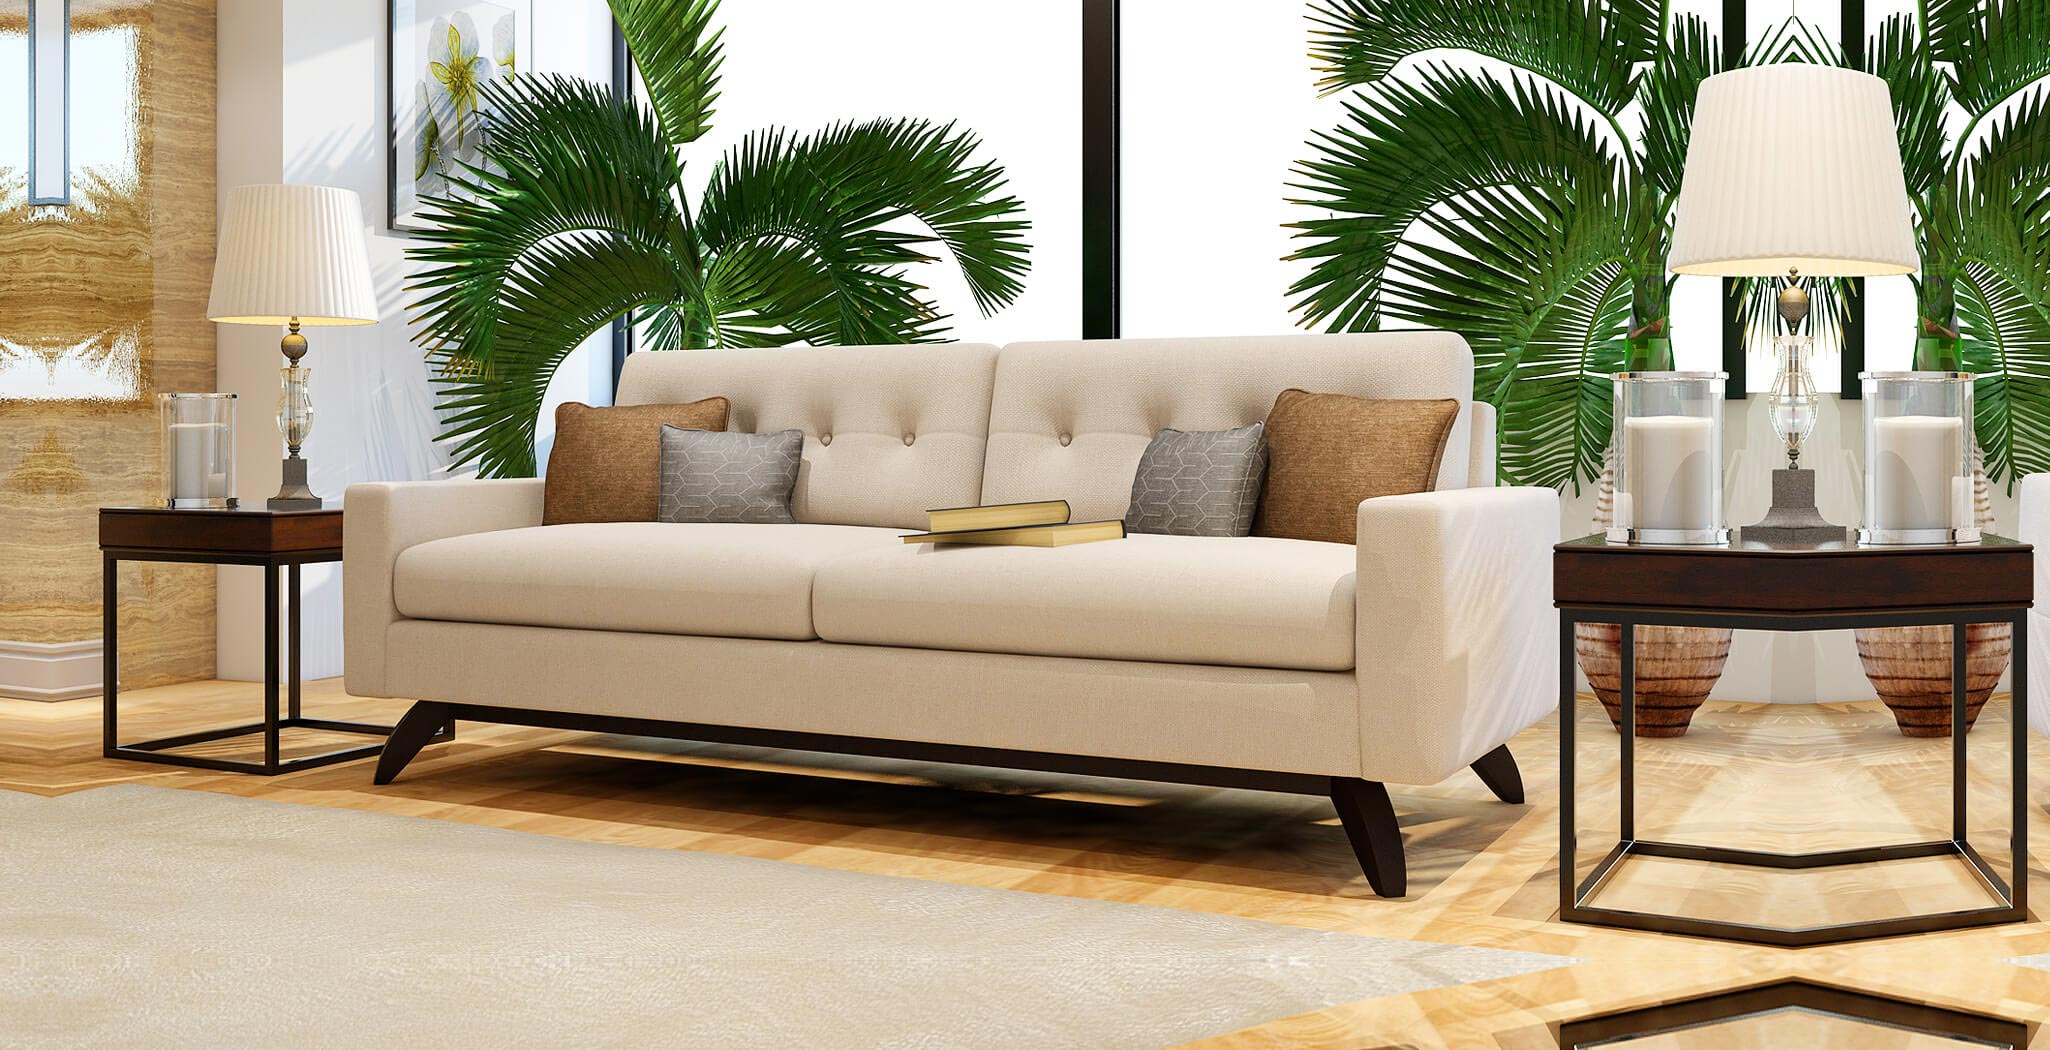 milan sofa furniture gallery 1